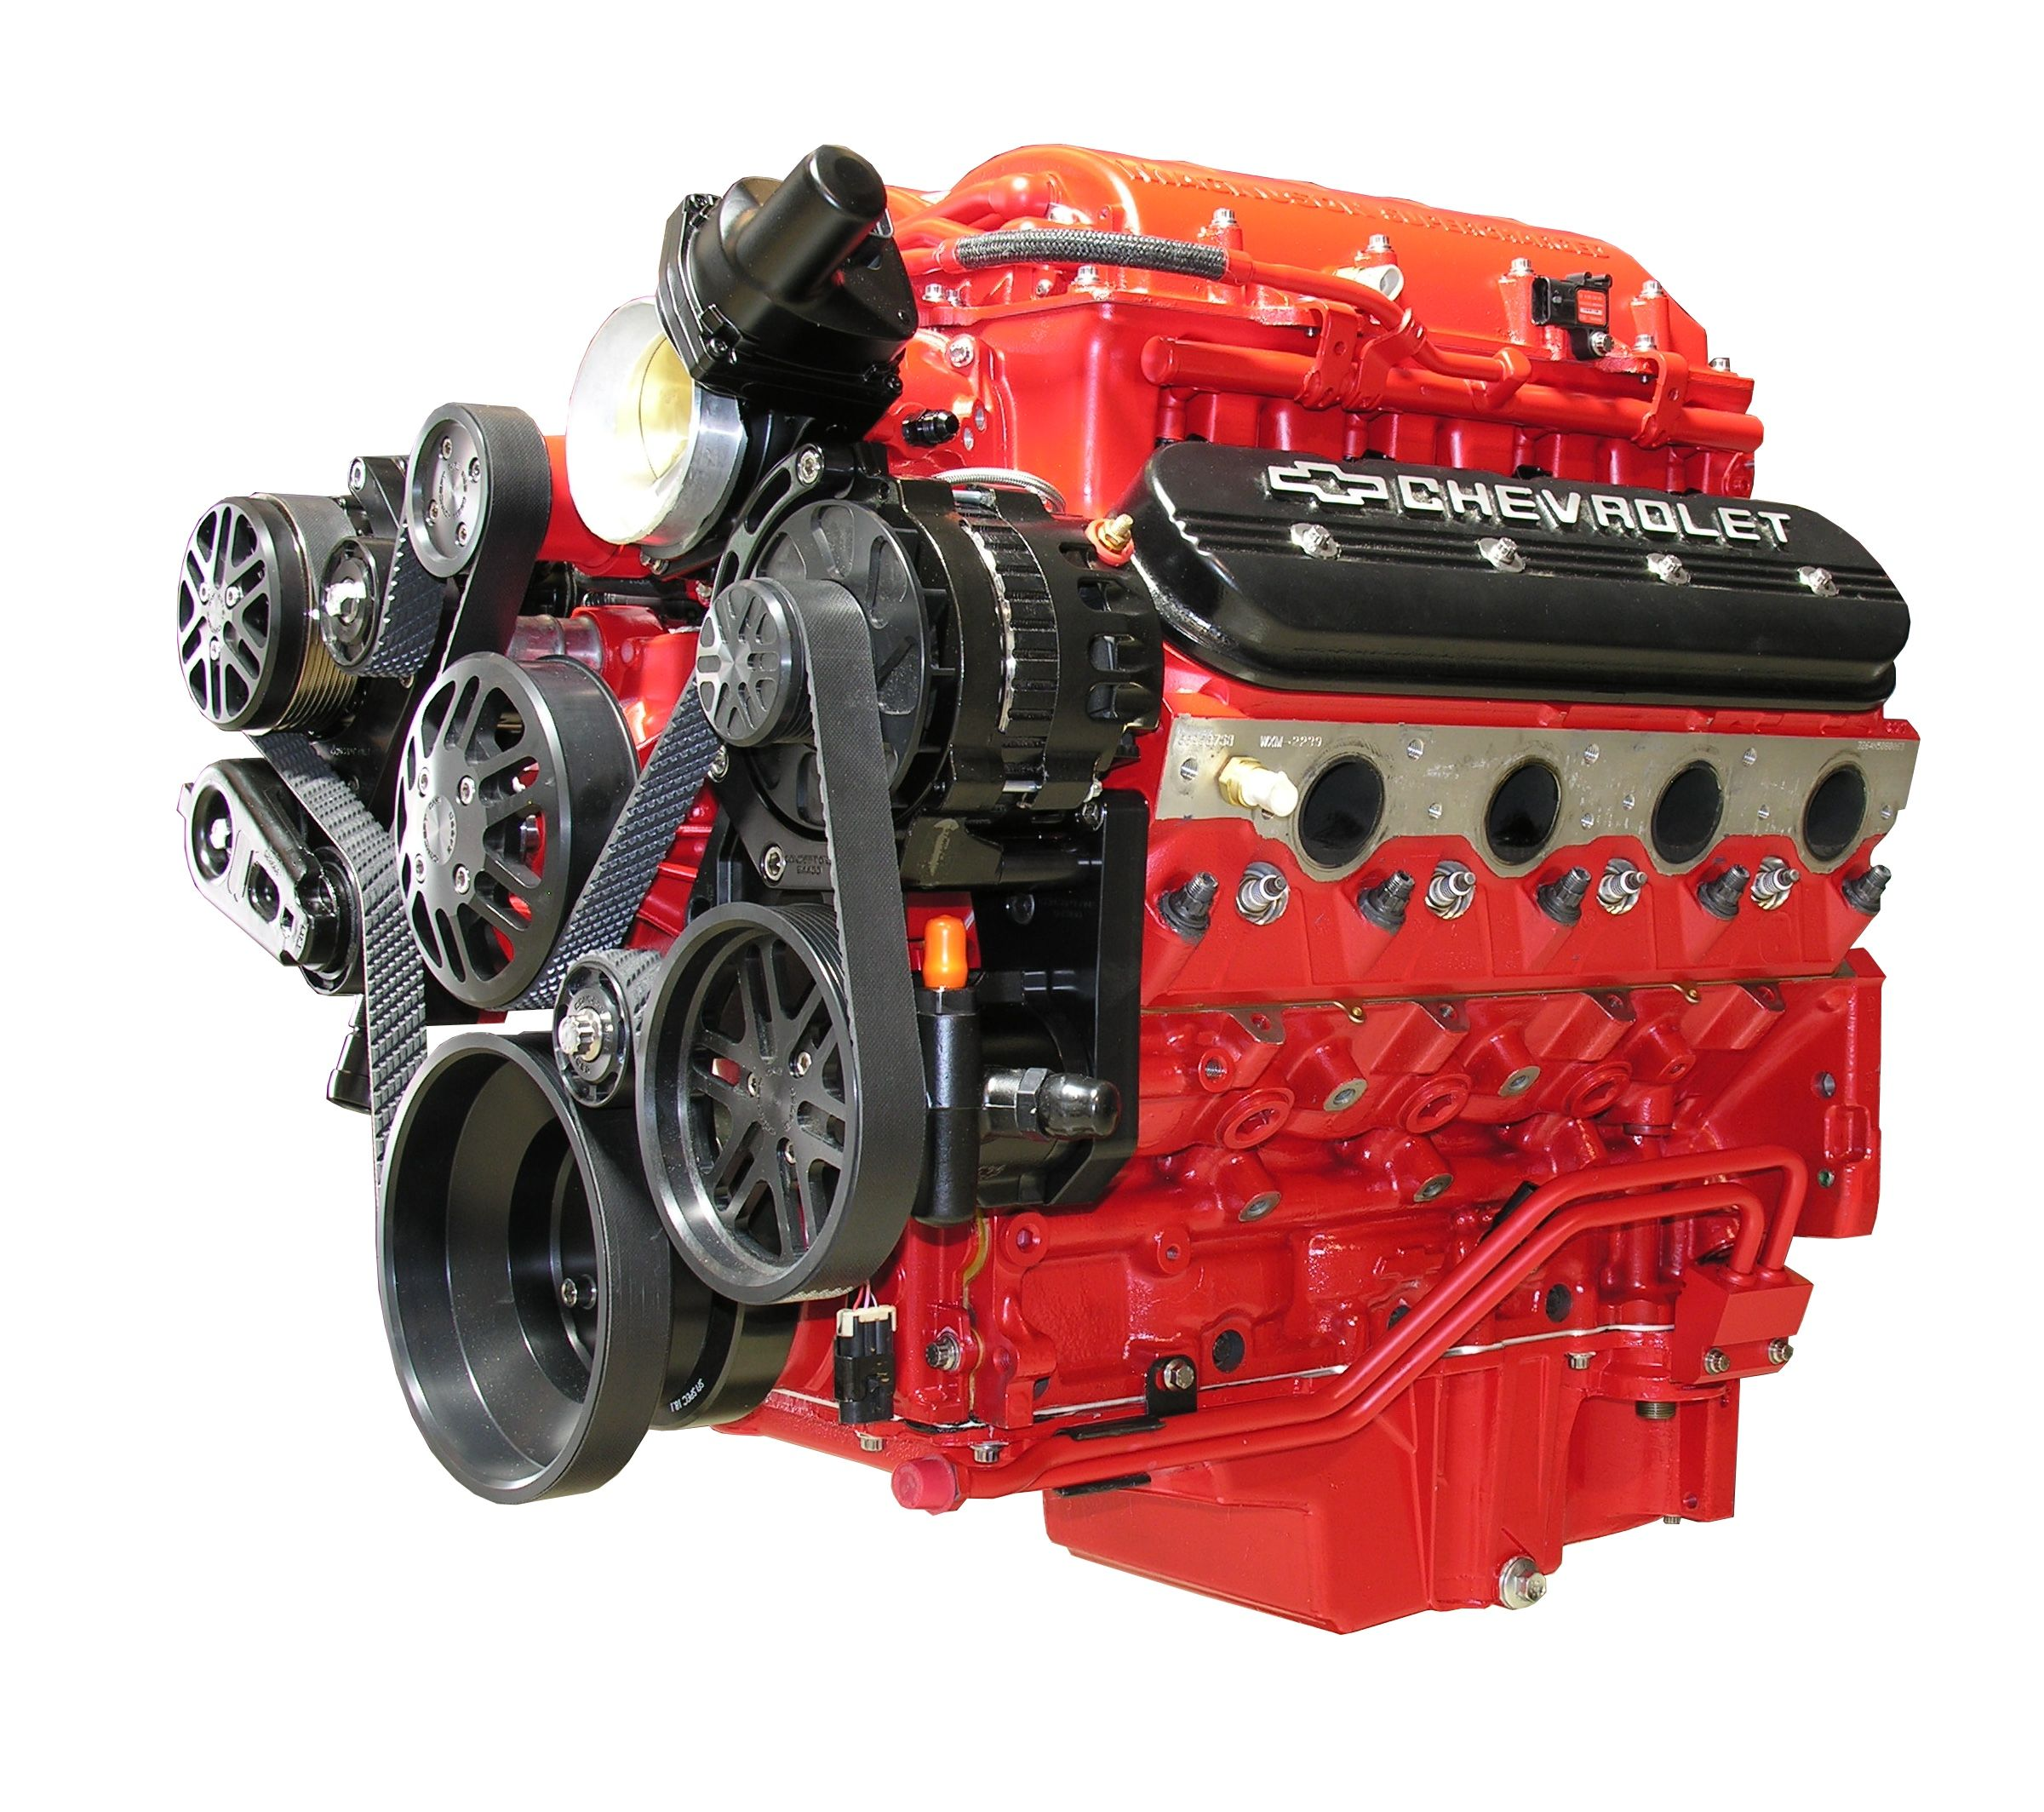 Ls1 Engine Is On: This Custom LSx 427 Engine Is Designed For Style